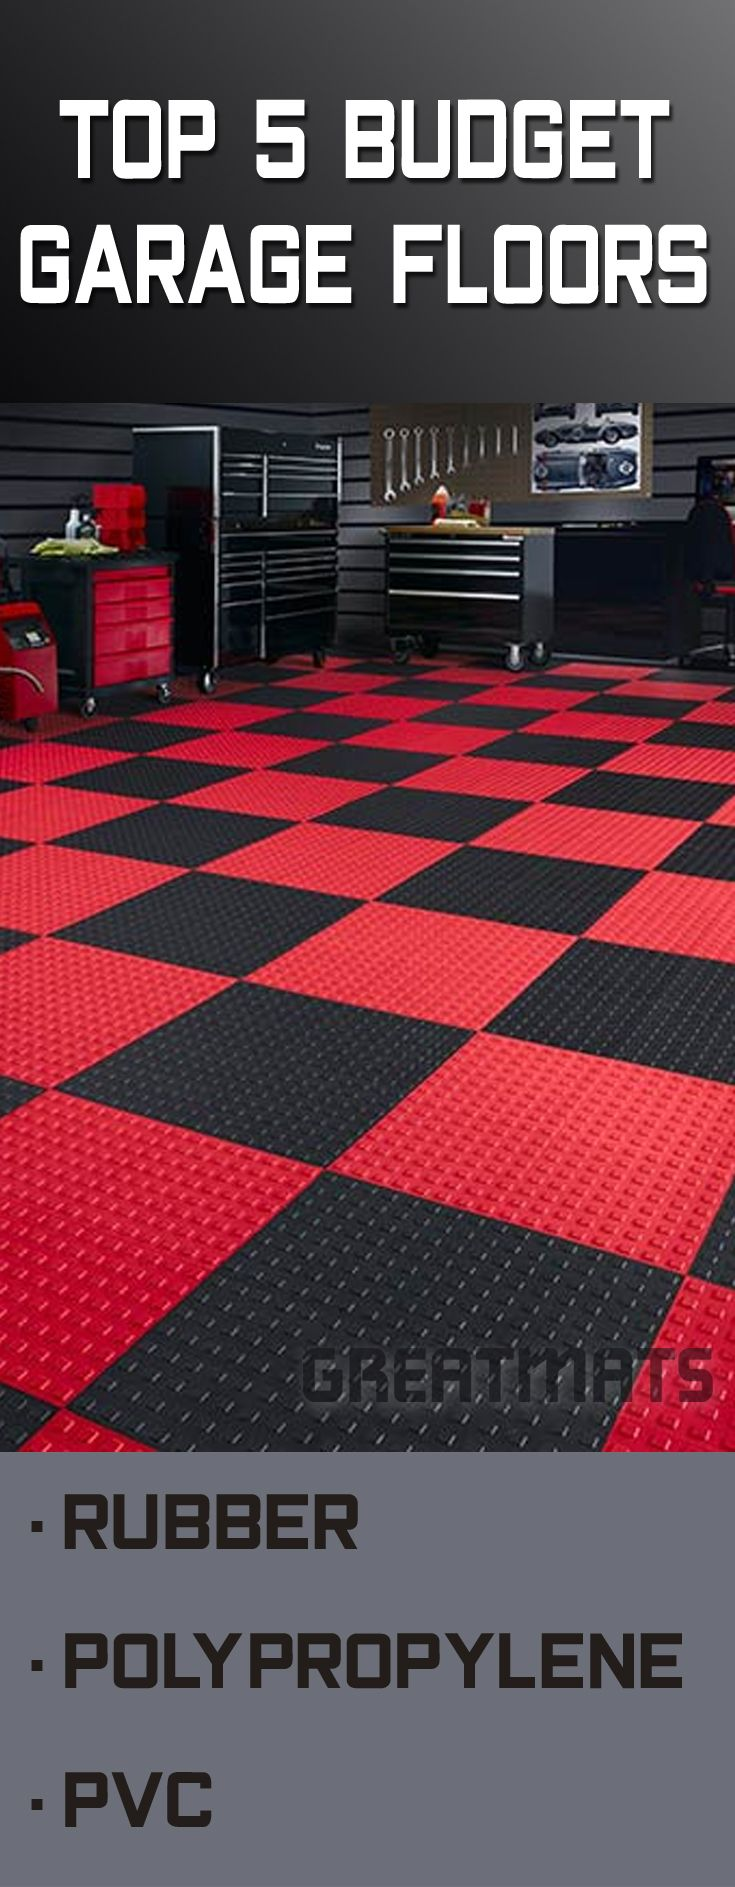 48 best garage flooring images on pinterest check out our top 5 garage floors on a budget blog a durable garage floor dailygadgetfo Gallery